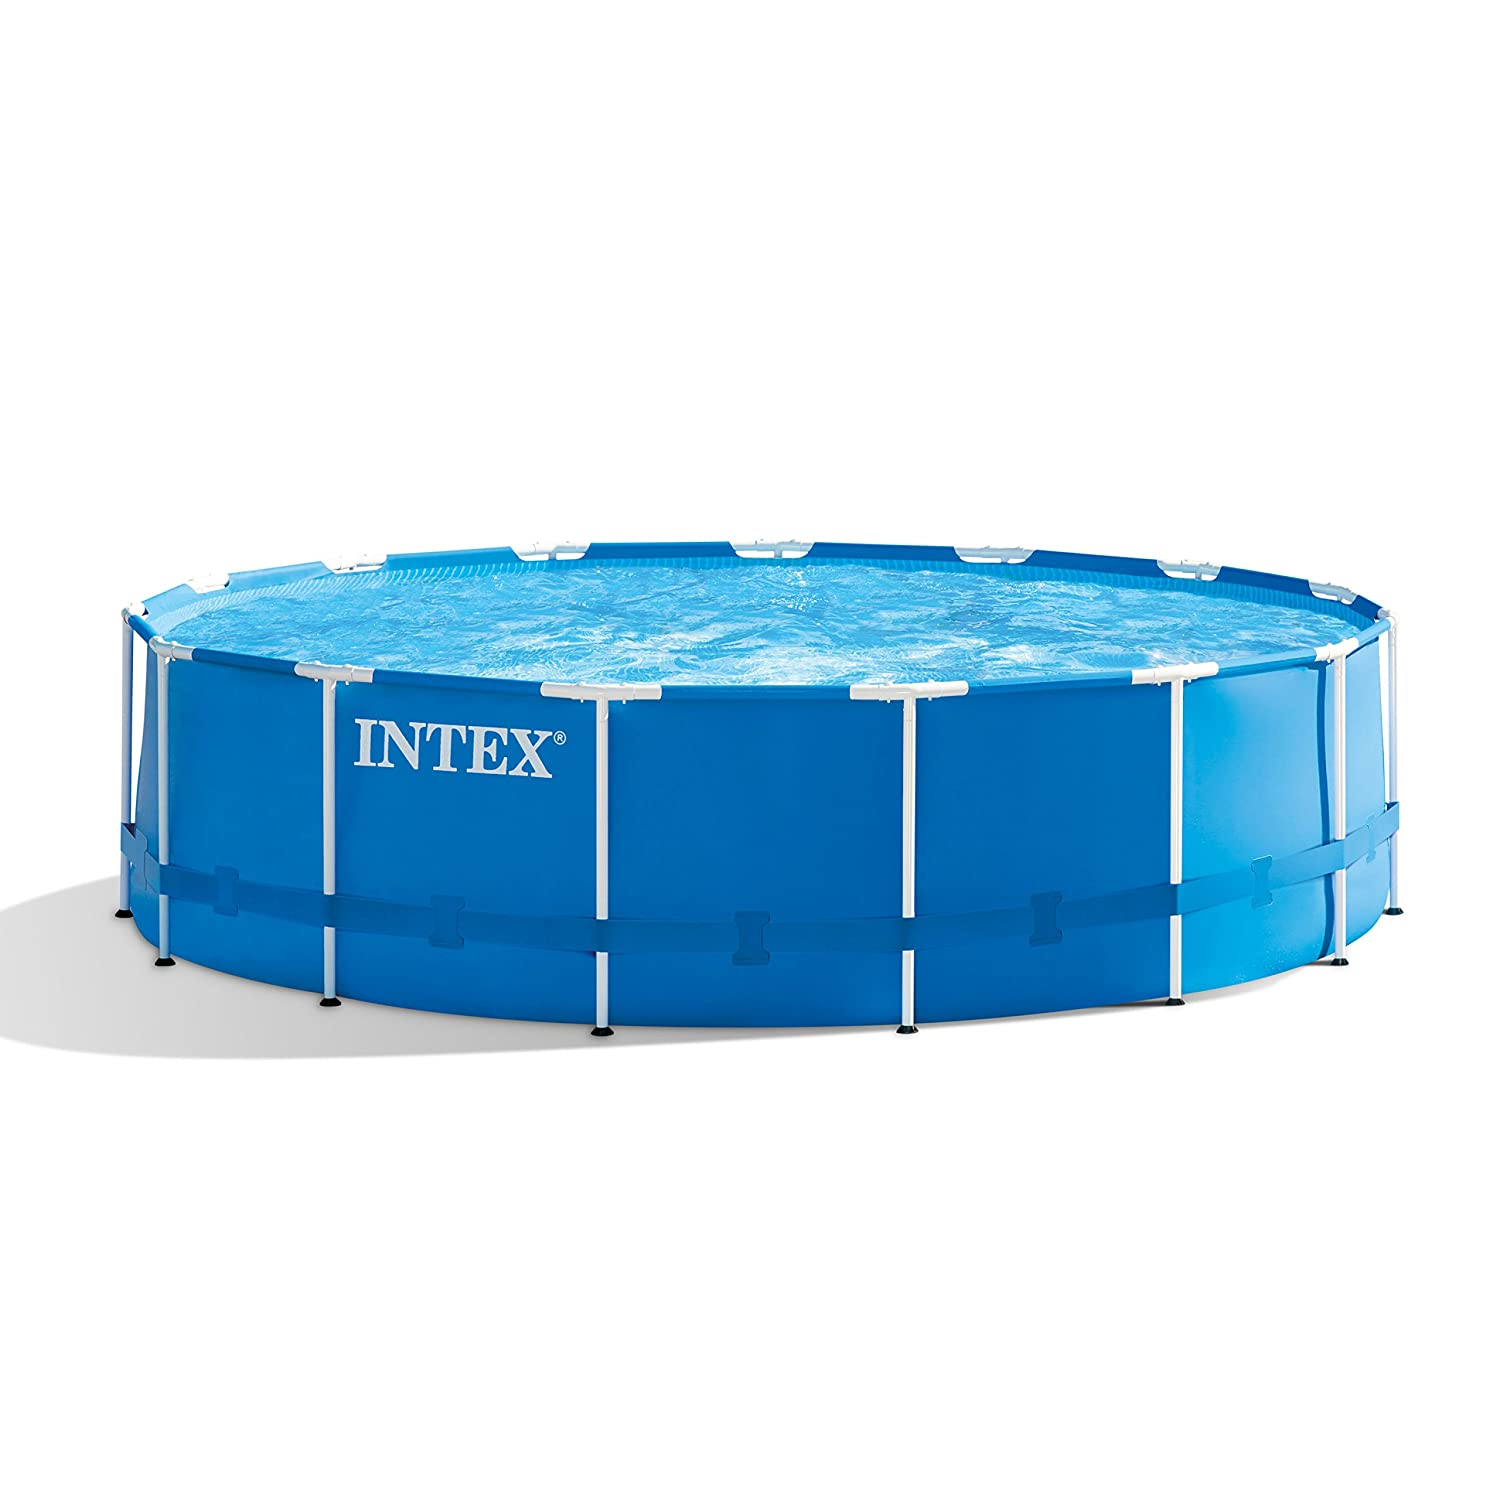 Intex 15ft X 48in Metal Frame Pool Set